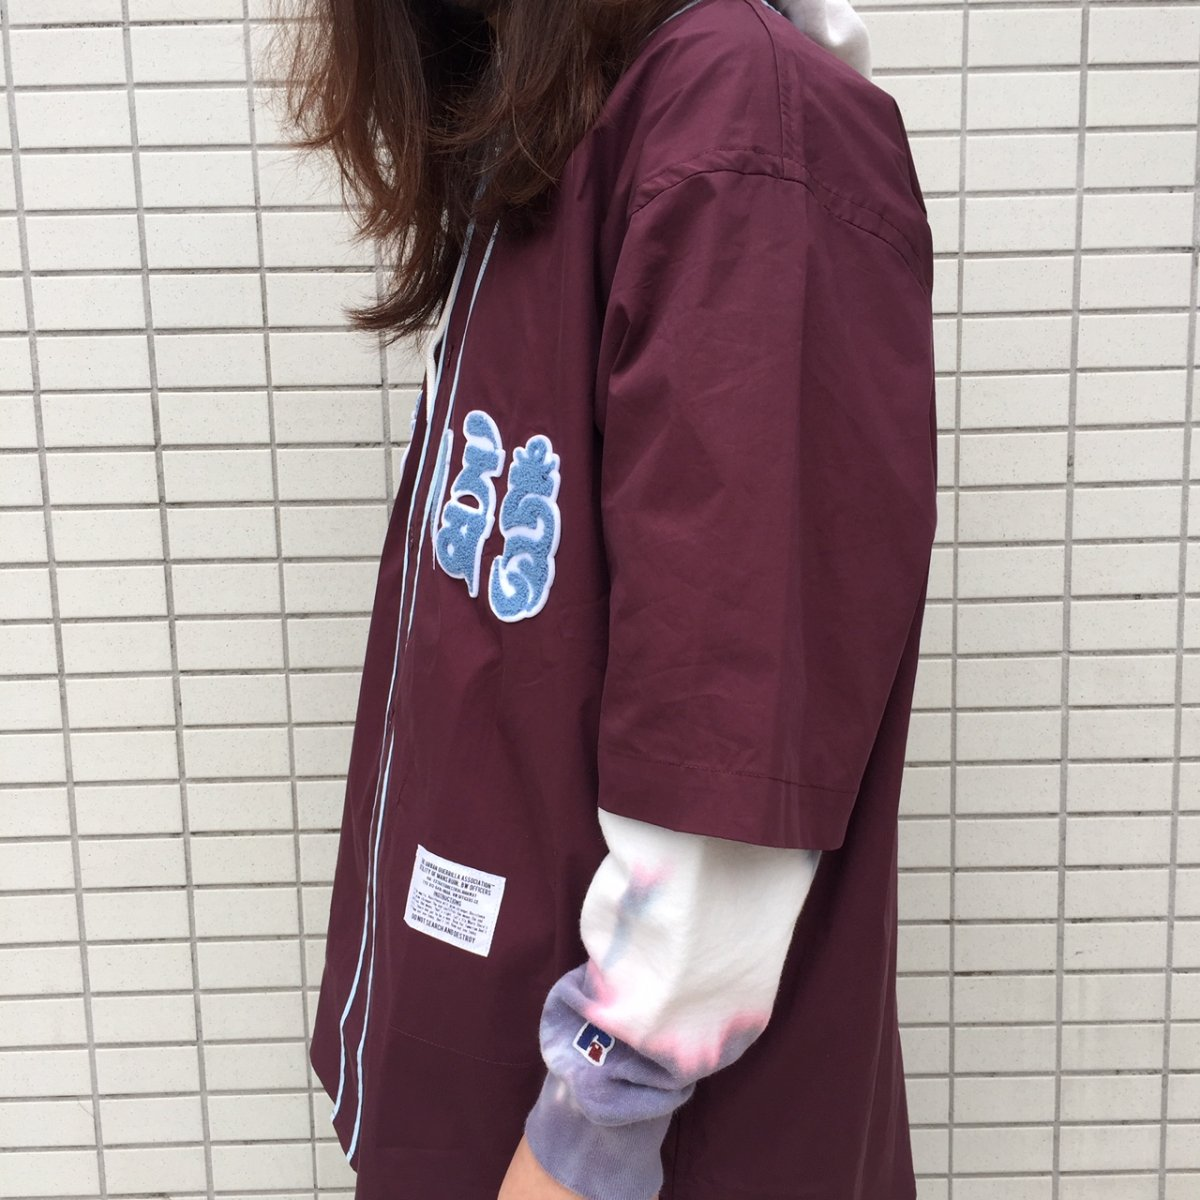 <img class='new_mark_img1' src='https://img.shop-pro.jp/img/new/icons24.gif' style='border:none;display:inline;margin:0px;padding:0px;width:auto;' />【SALE / 30%OFF】Black weirdos  ブラック ウィドー / シャツ Mantra Baseball Shirt 【D・PURPLE】